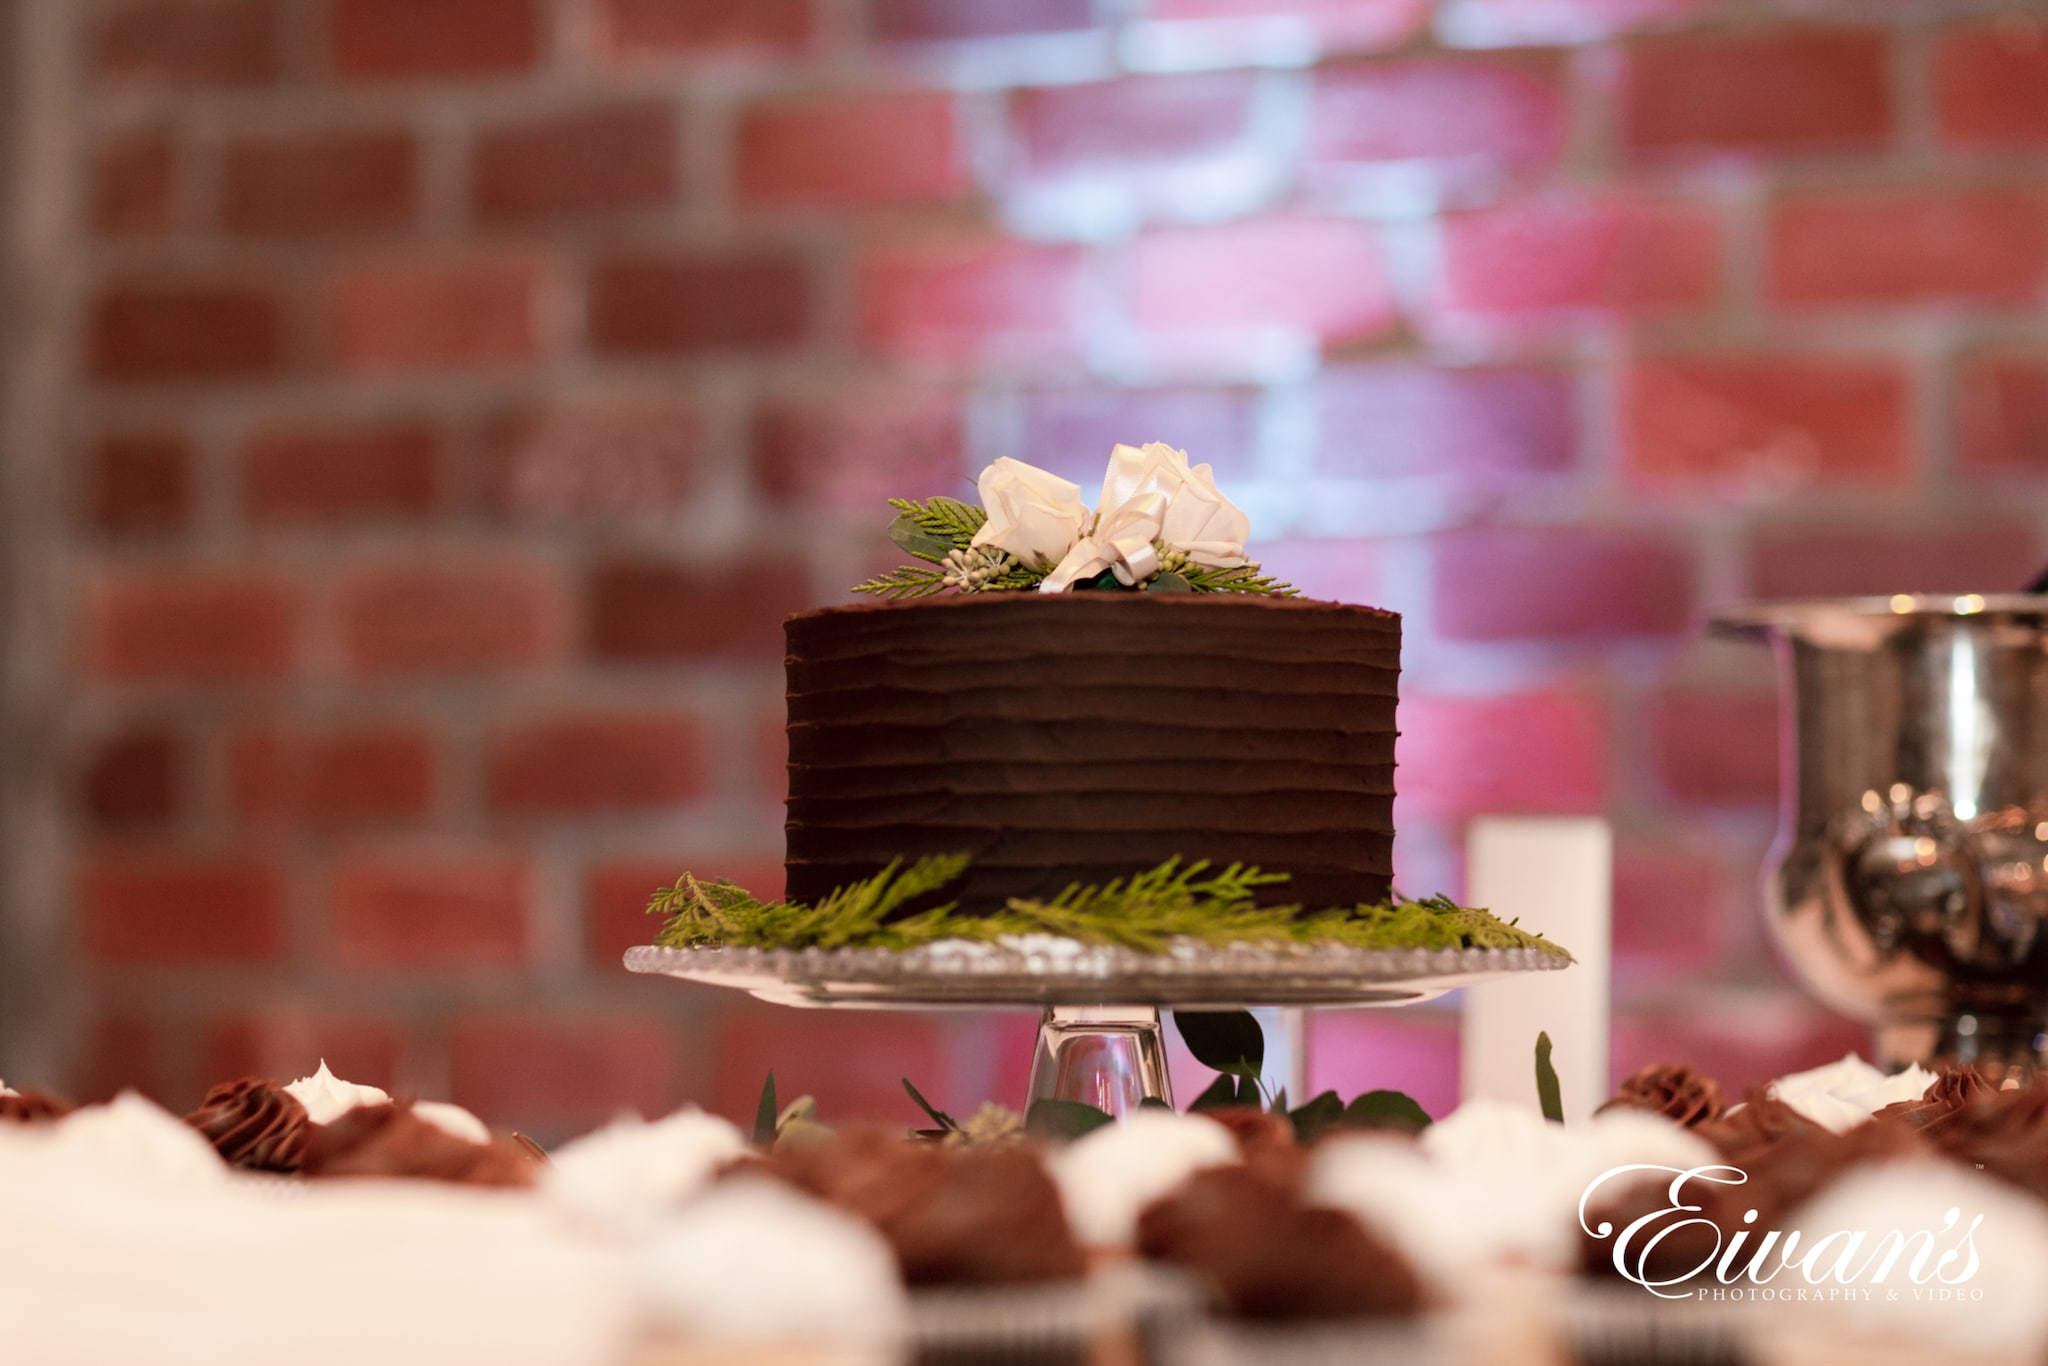 image of a chocolate cake with deckled edges